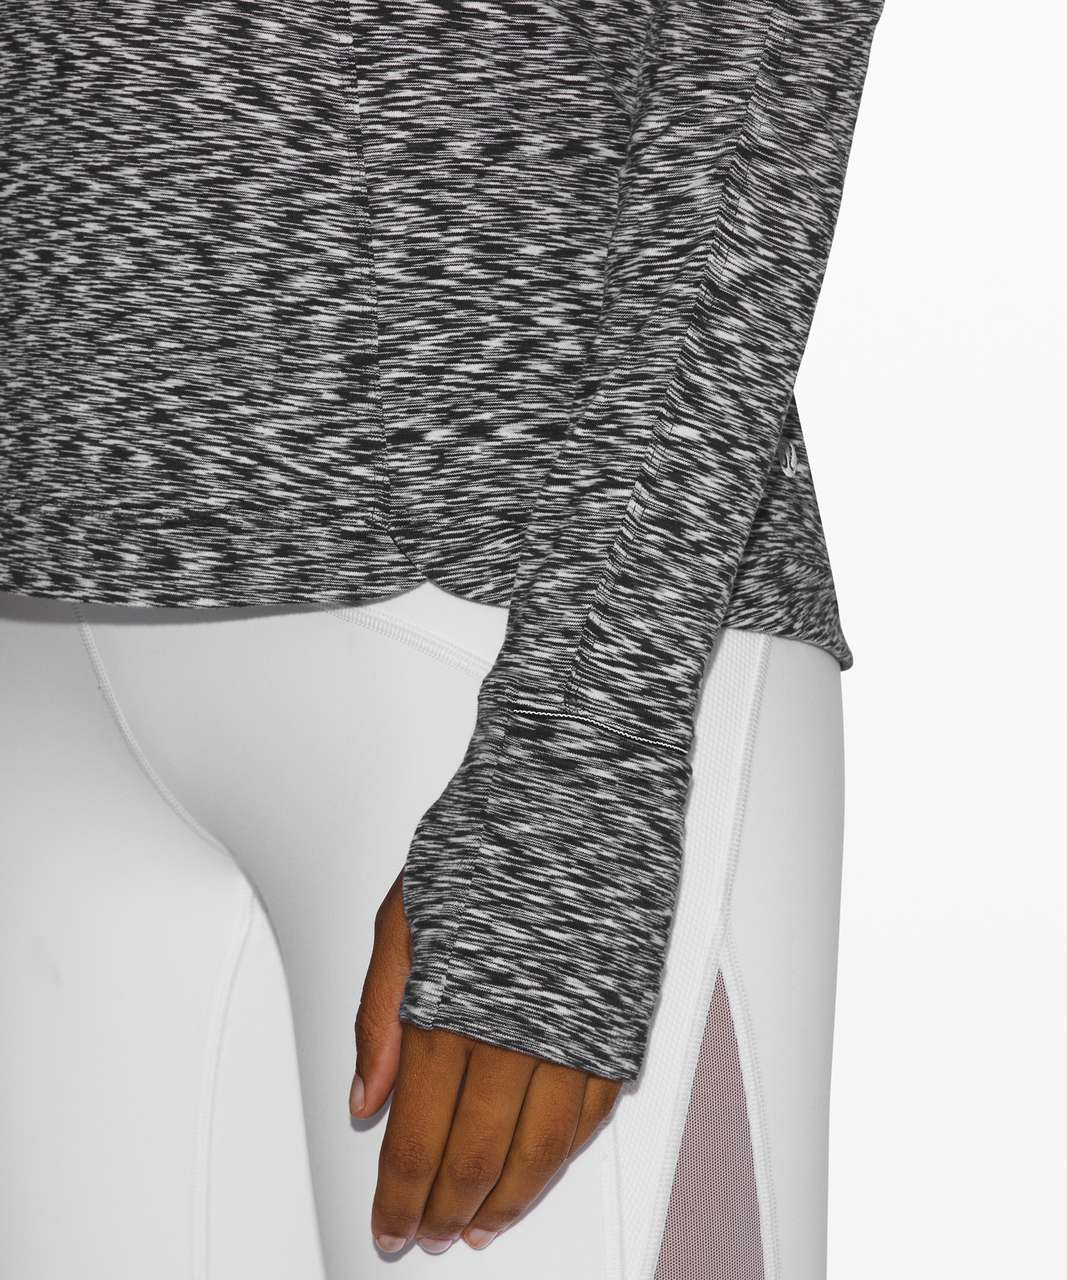 Lululemon Runderful Long Sleeve - Spaced Out Space Dye Black White